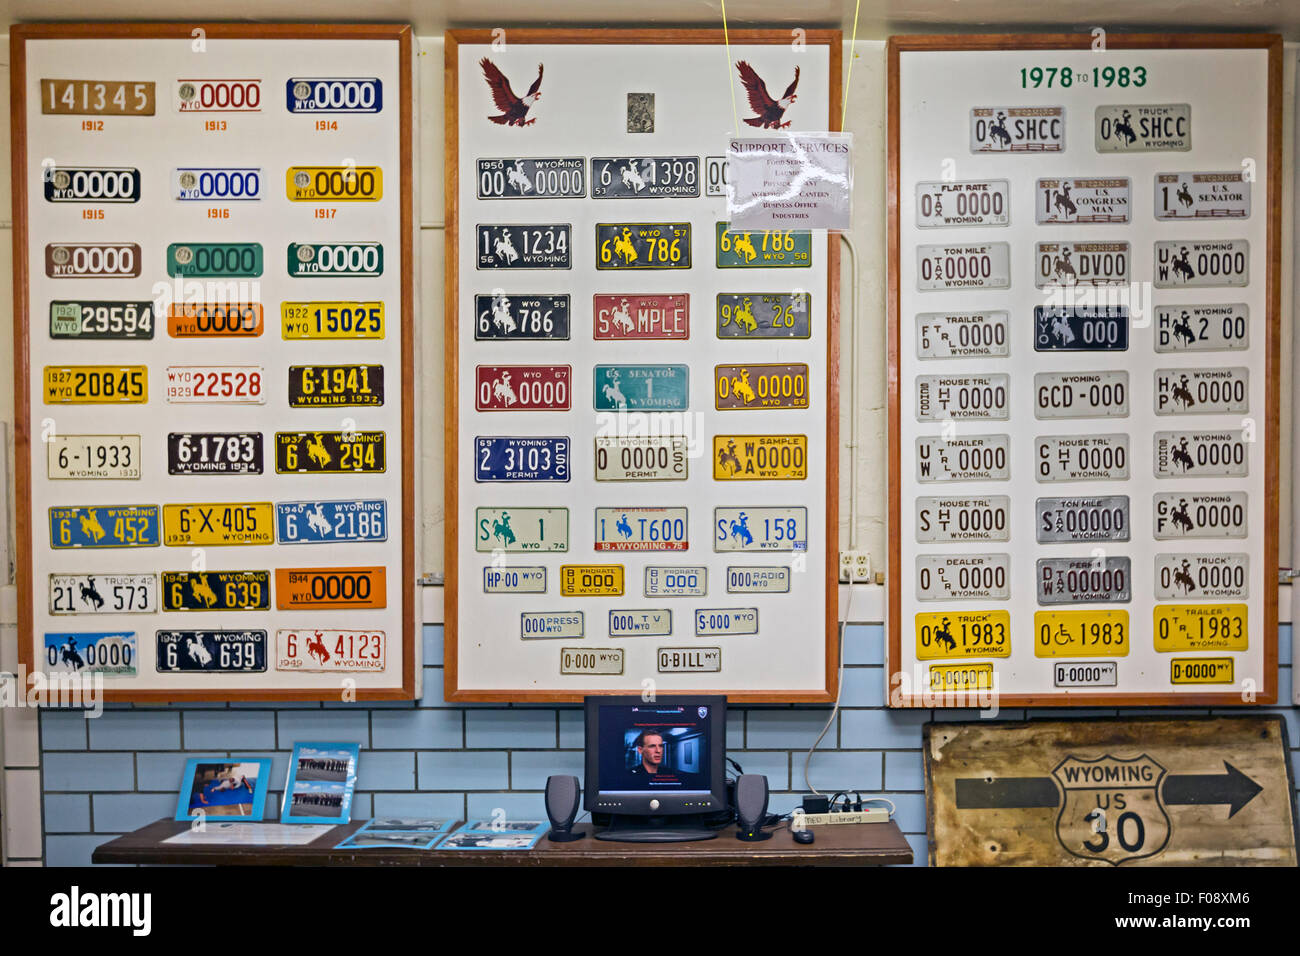 Rawlins, Wyoming - A display of license plates manufactured by inmates at the former Wyoming State Penitentiary. - Stock Image